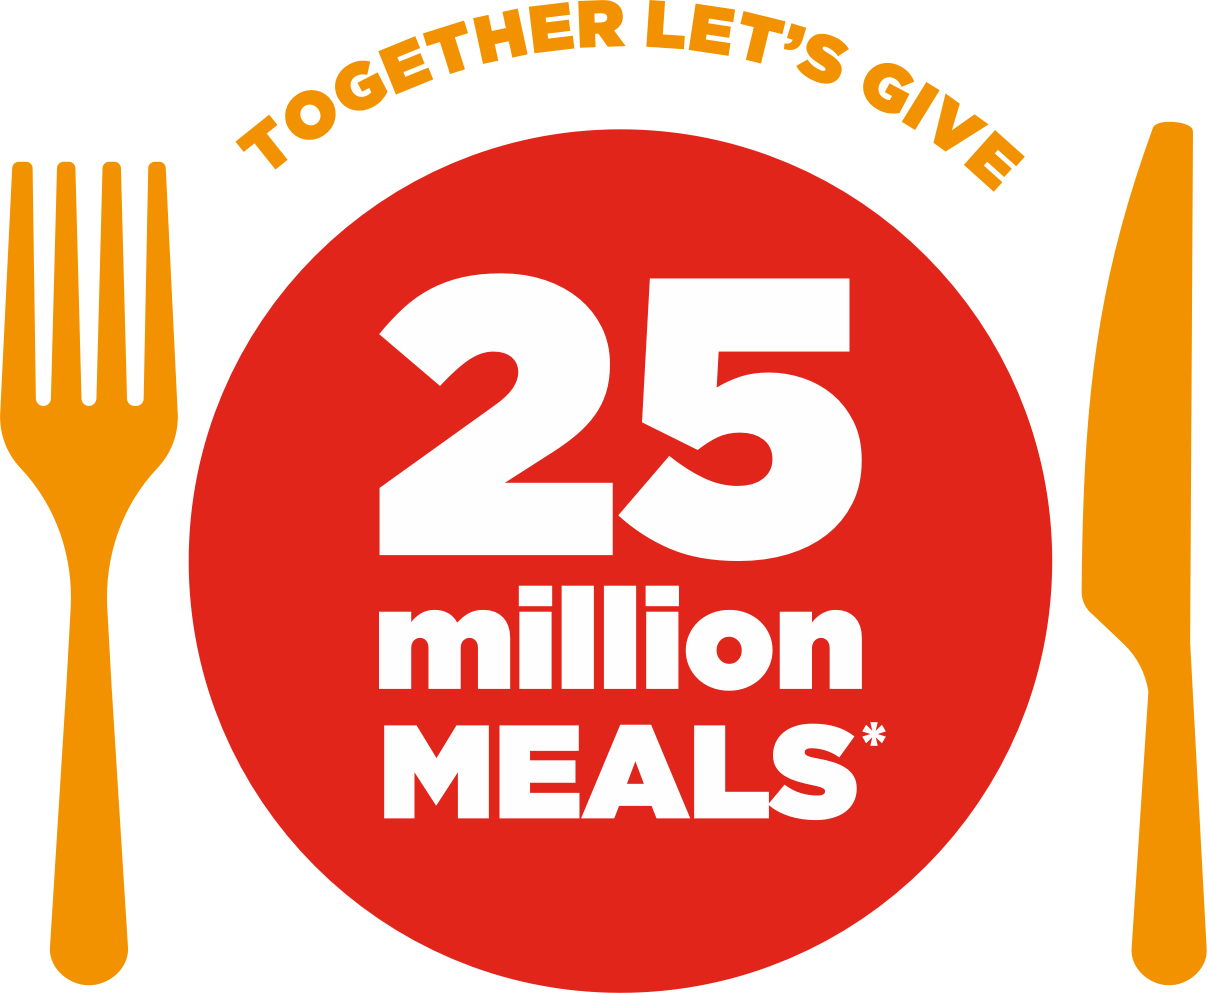 CIRCLE K - Together let's Give 25 Million Meals